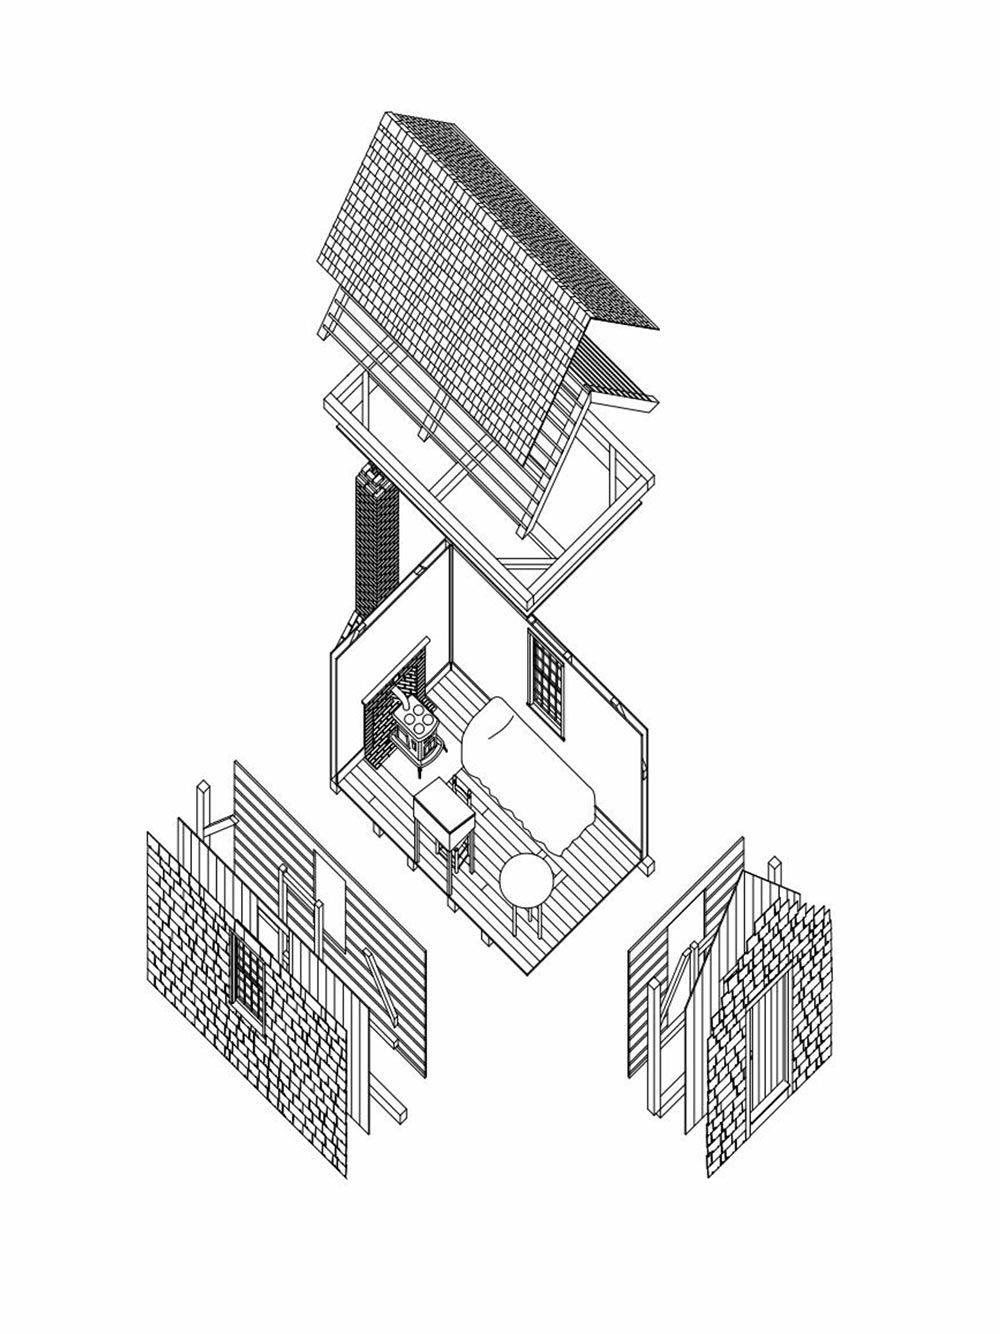 Coronavirus pandemic and claustrophobia: Axonometric of the Cabin at Walden Pond